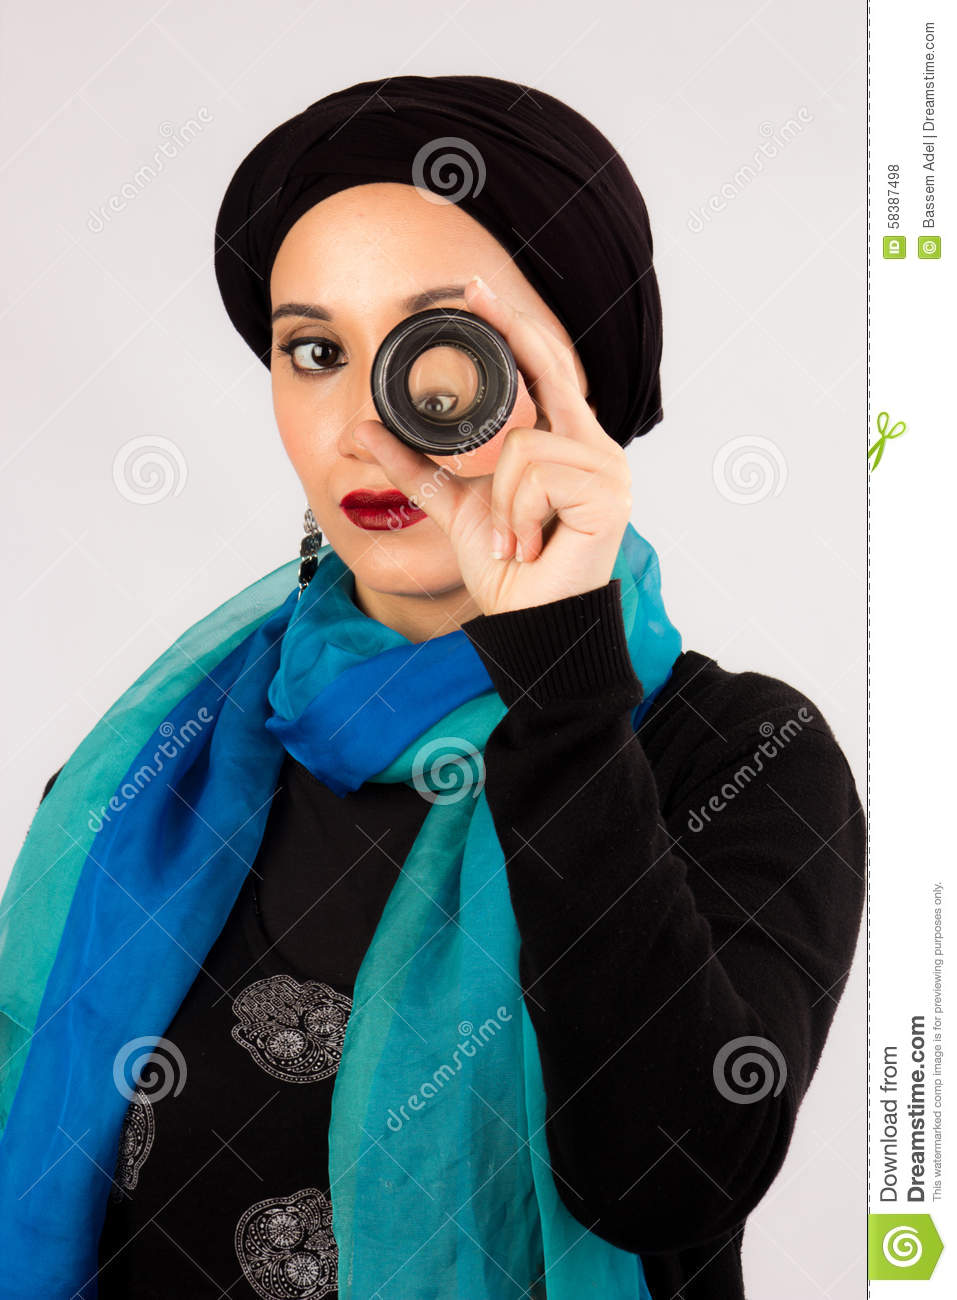 Young Woman Holding A Lens In Hijab And Colorful Scarf Stock Photo Image 58387498